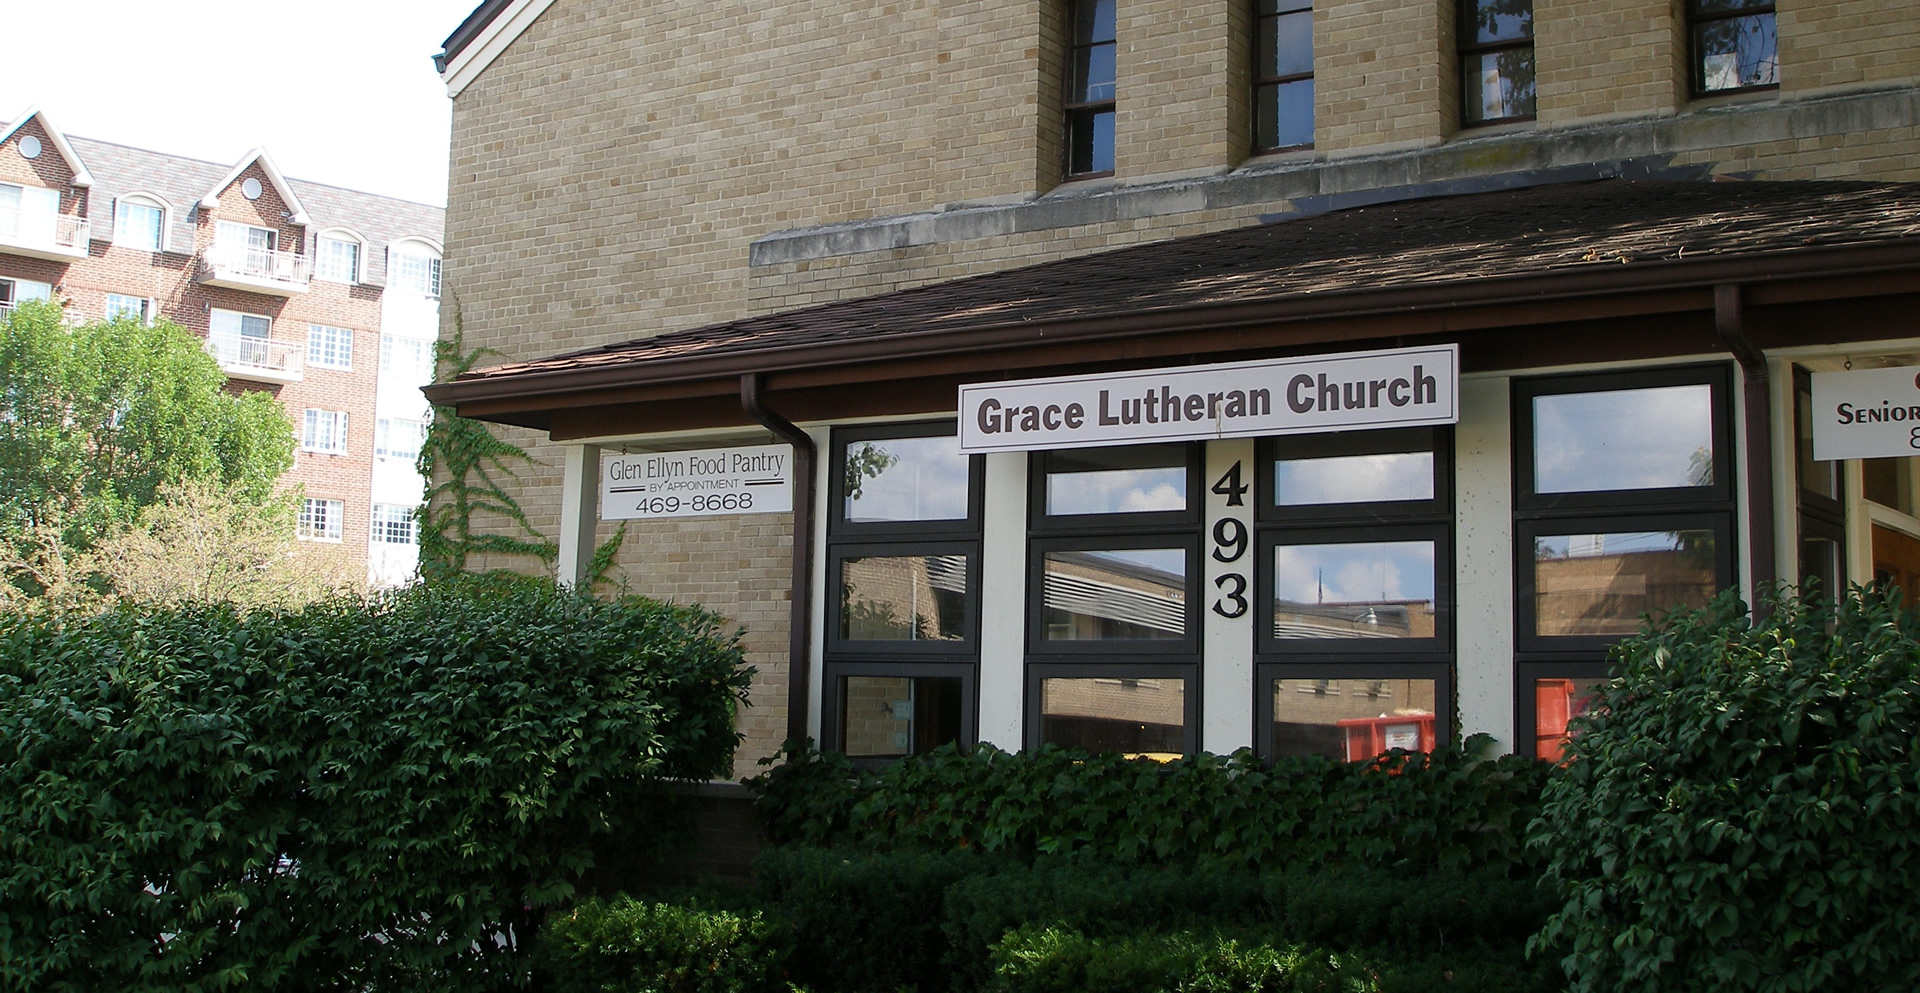 Contact Page Image of Grace Lutheran Church Building